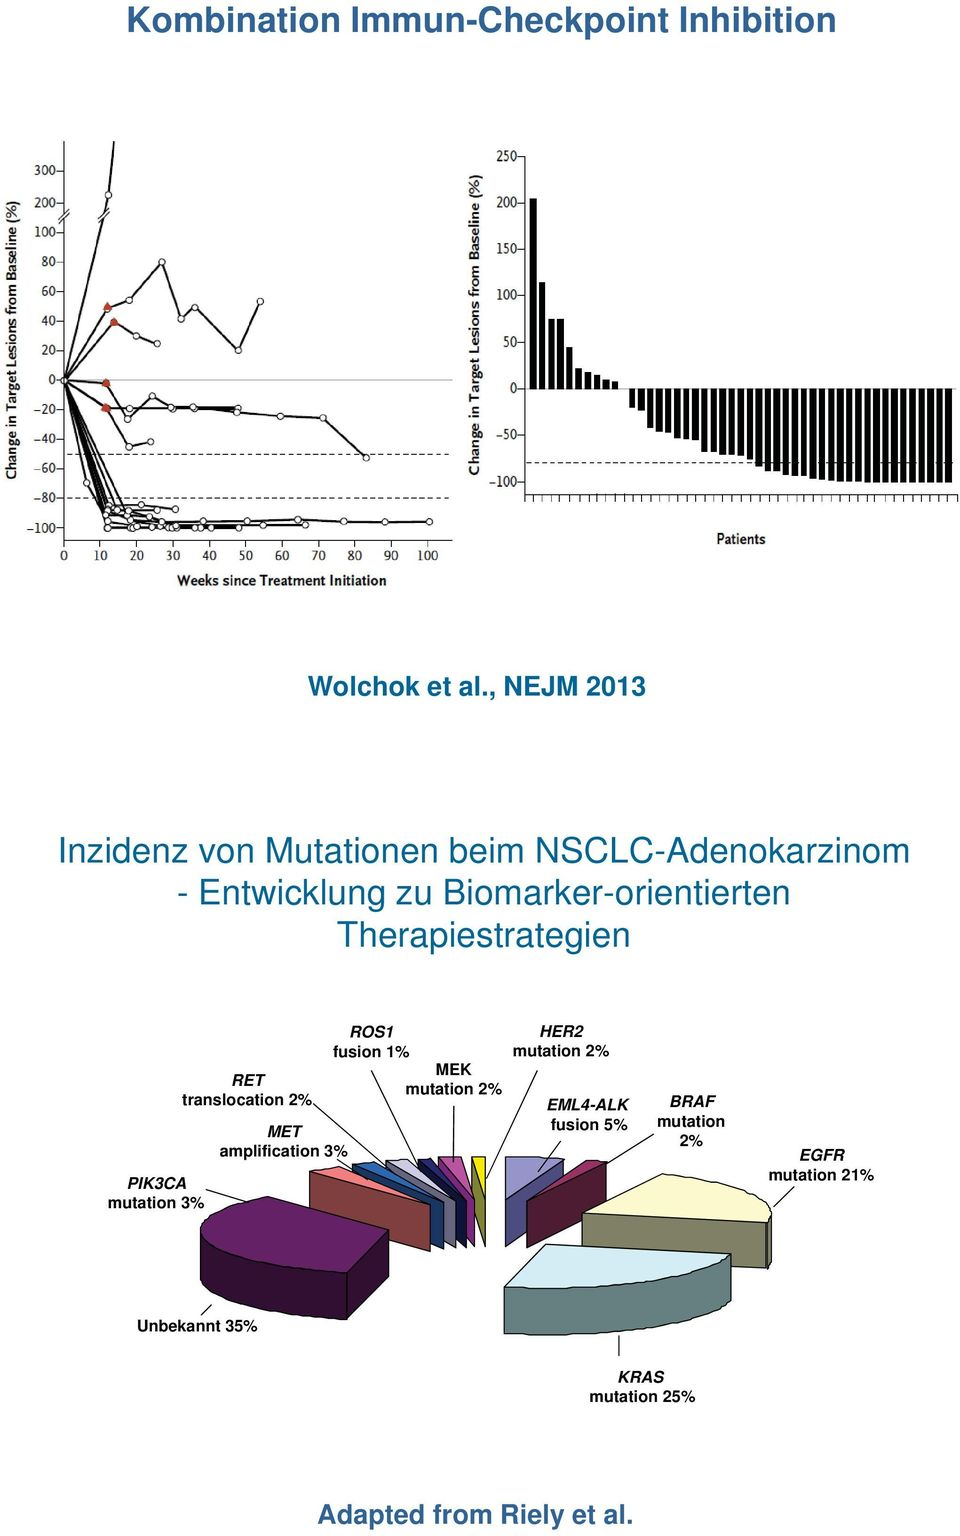 Biomarker-orientierten Therapiestrategien PIK3CA mutation 3% RET translocation 2% MET